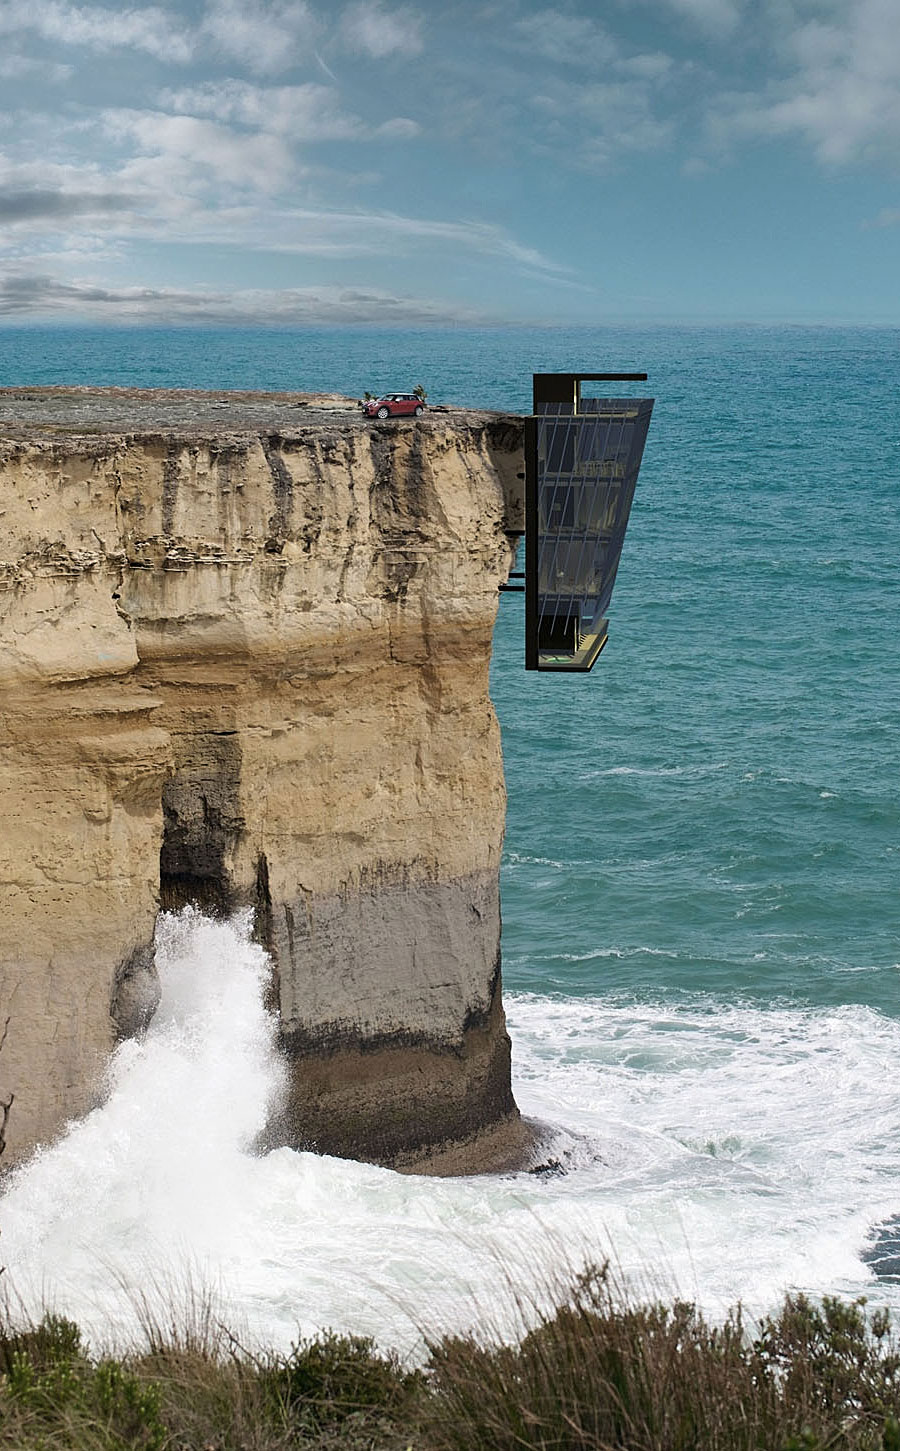 cliff-house-concept-by-modscape-concept-02-muted